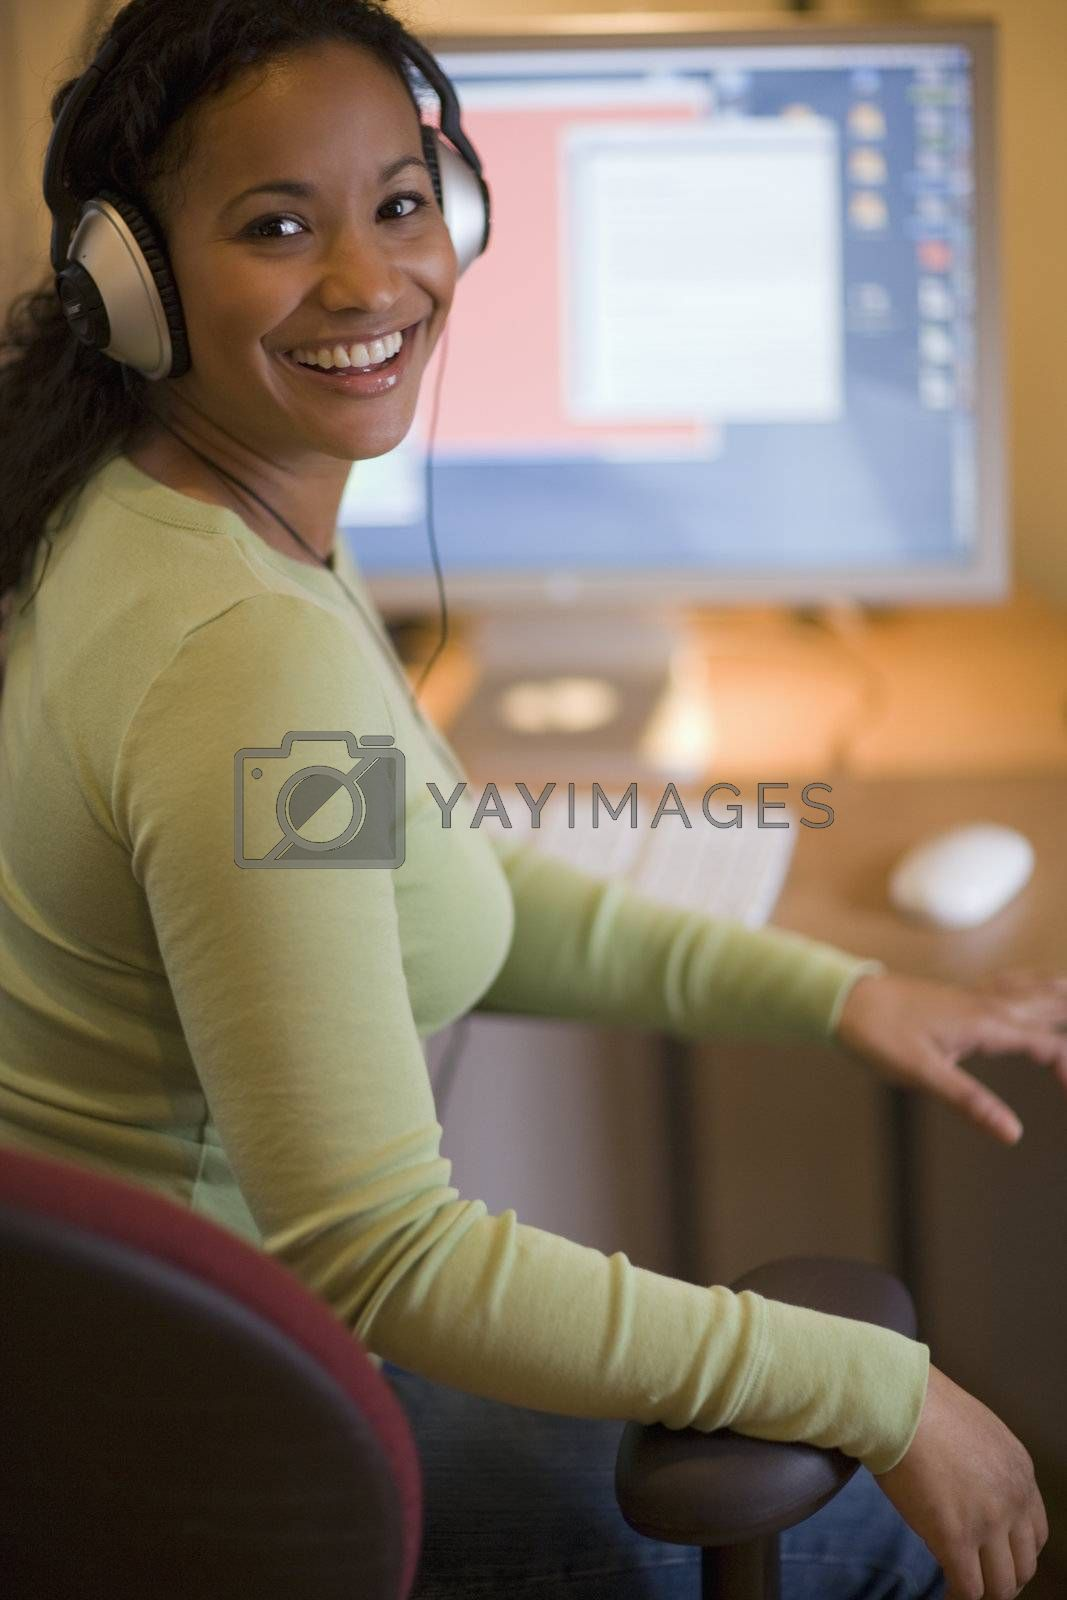 Smiling young African American woman with headphones at desk with computer